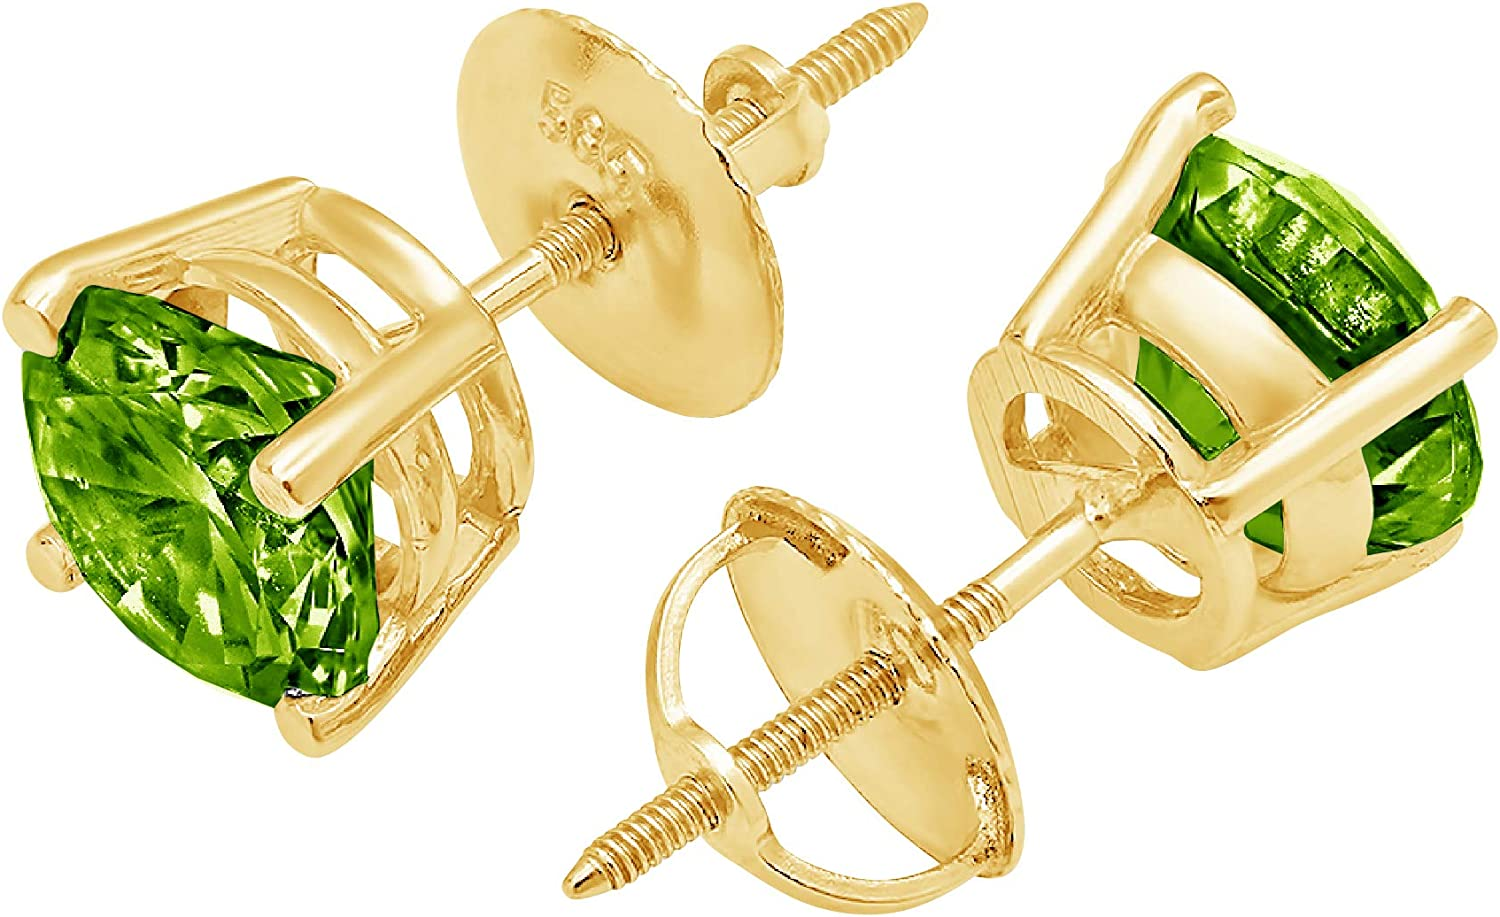 Clara Pucci 2.1 ct Brilliant Round Cut Solitaire VVS1 Fine Natural Green Peridot Gemstone Pair of Stud Earrings Solid 18K Yellow Gold Screw Back